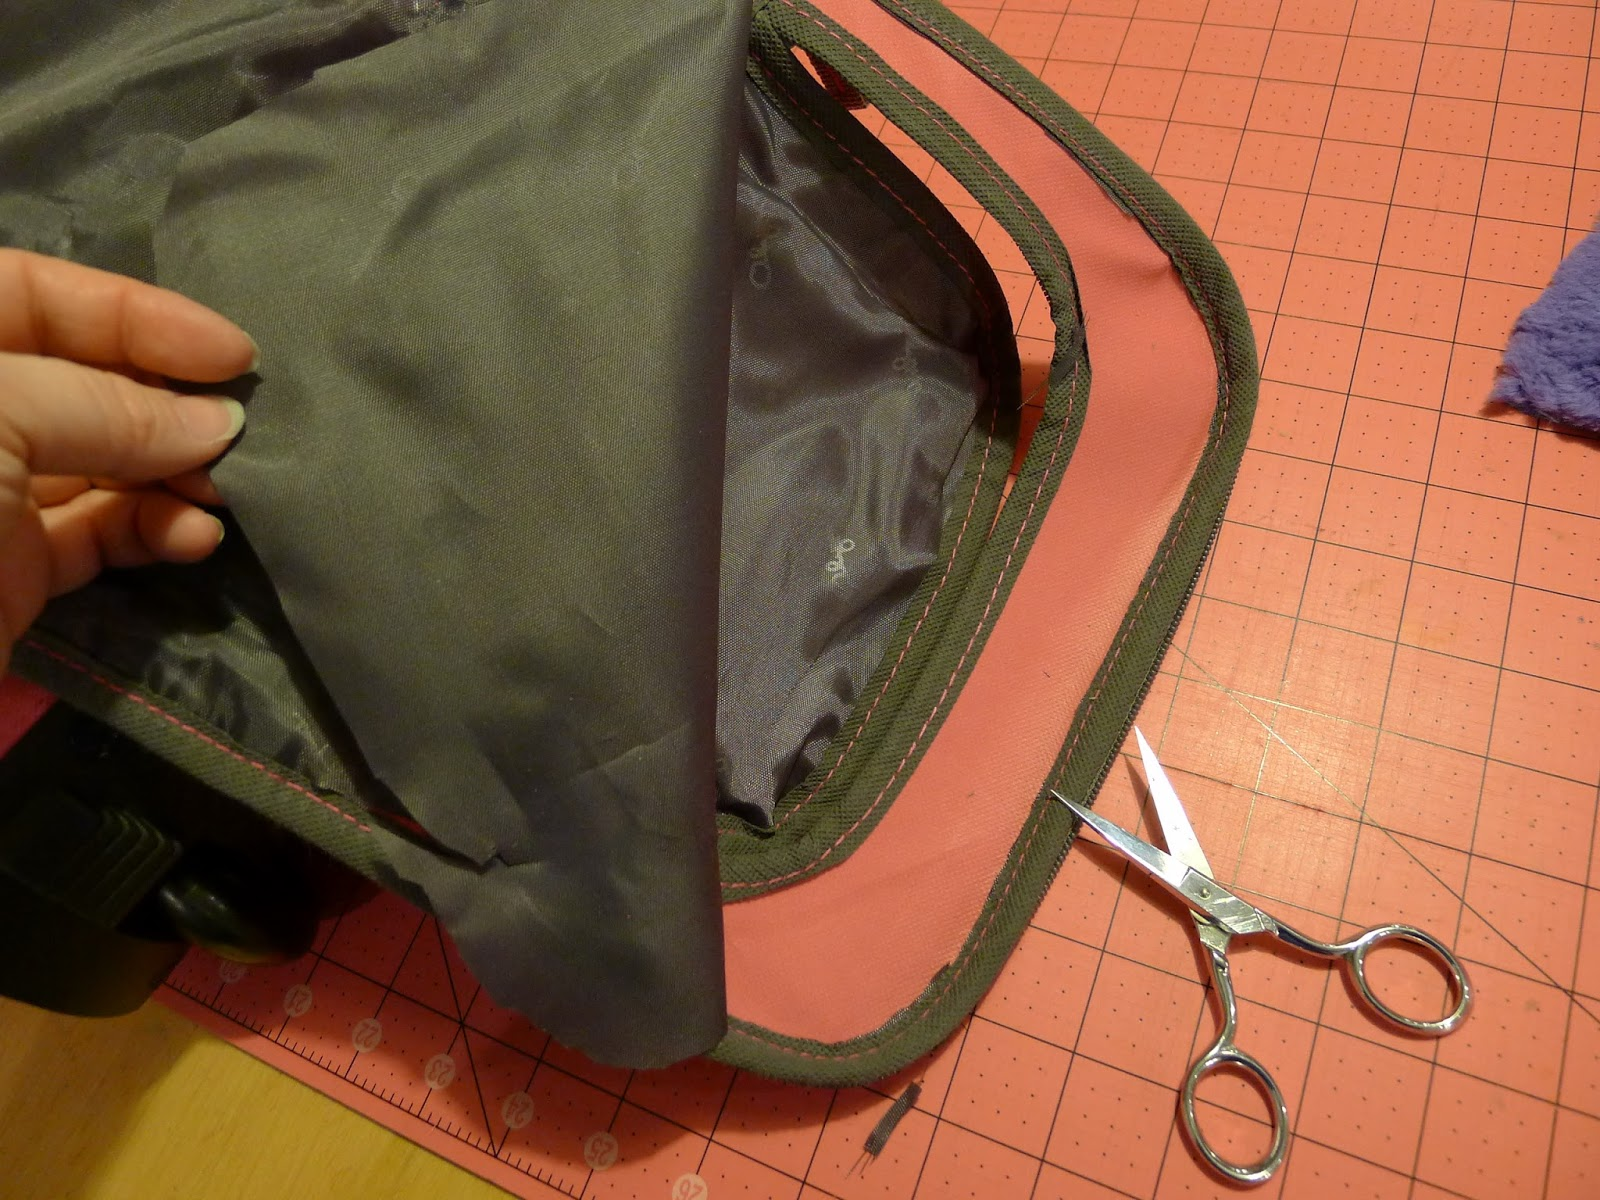 6712ef6b8df5 Use some scratch paper to make a pattern for the size and shape of the  opening flap of the pocket. (If you're using the same suitcase, you can use  my ...